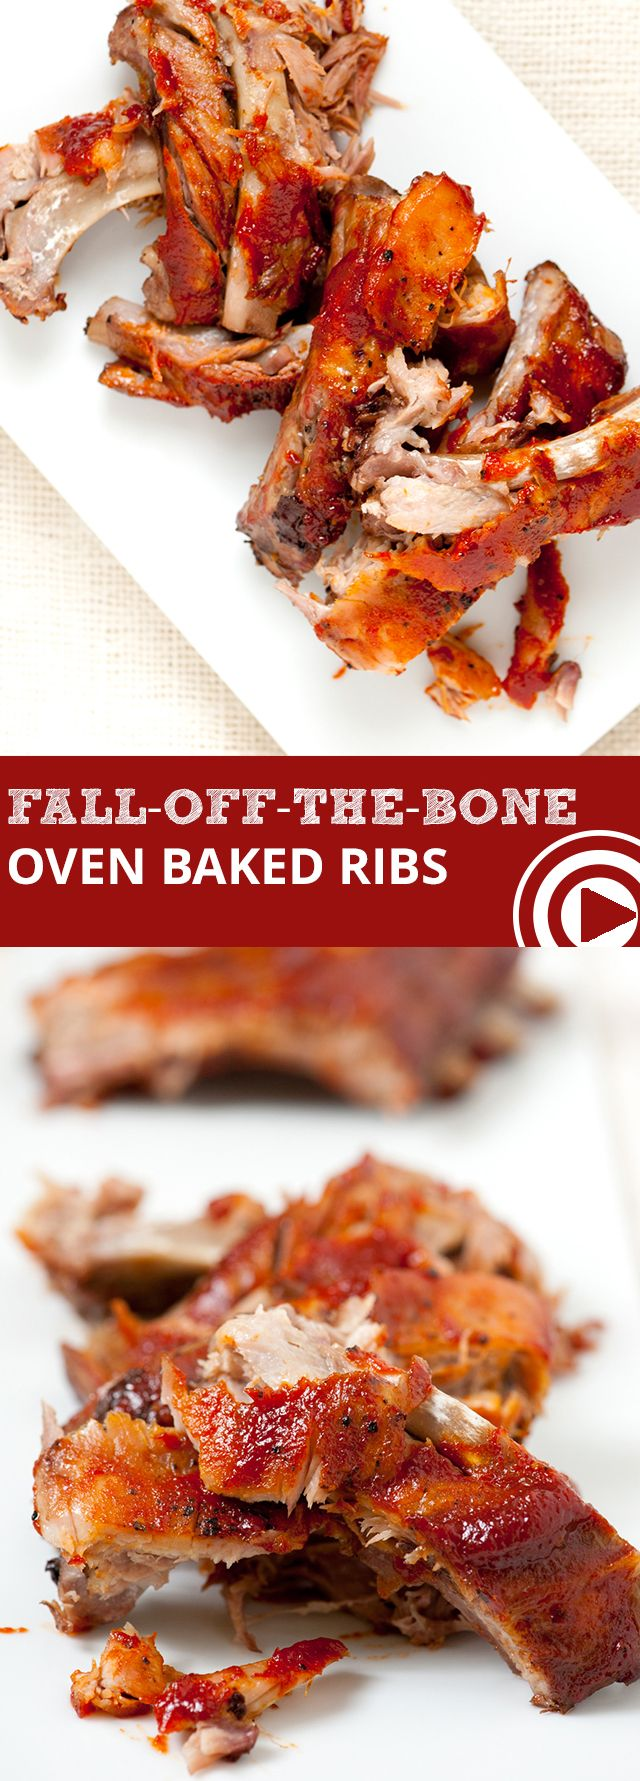 Easy Fall-Off-The-Bone Oven Baked Ribs with Video - Baking low and slow is the secret to these fall-off-the-bone oven baked ribs. Most of the recipe time is sitting back and relaxing waiting while the ribs bake. #ribs #dinner